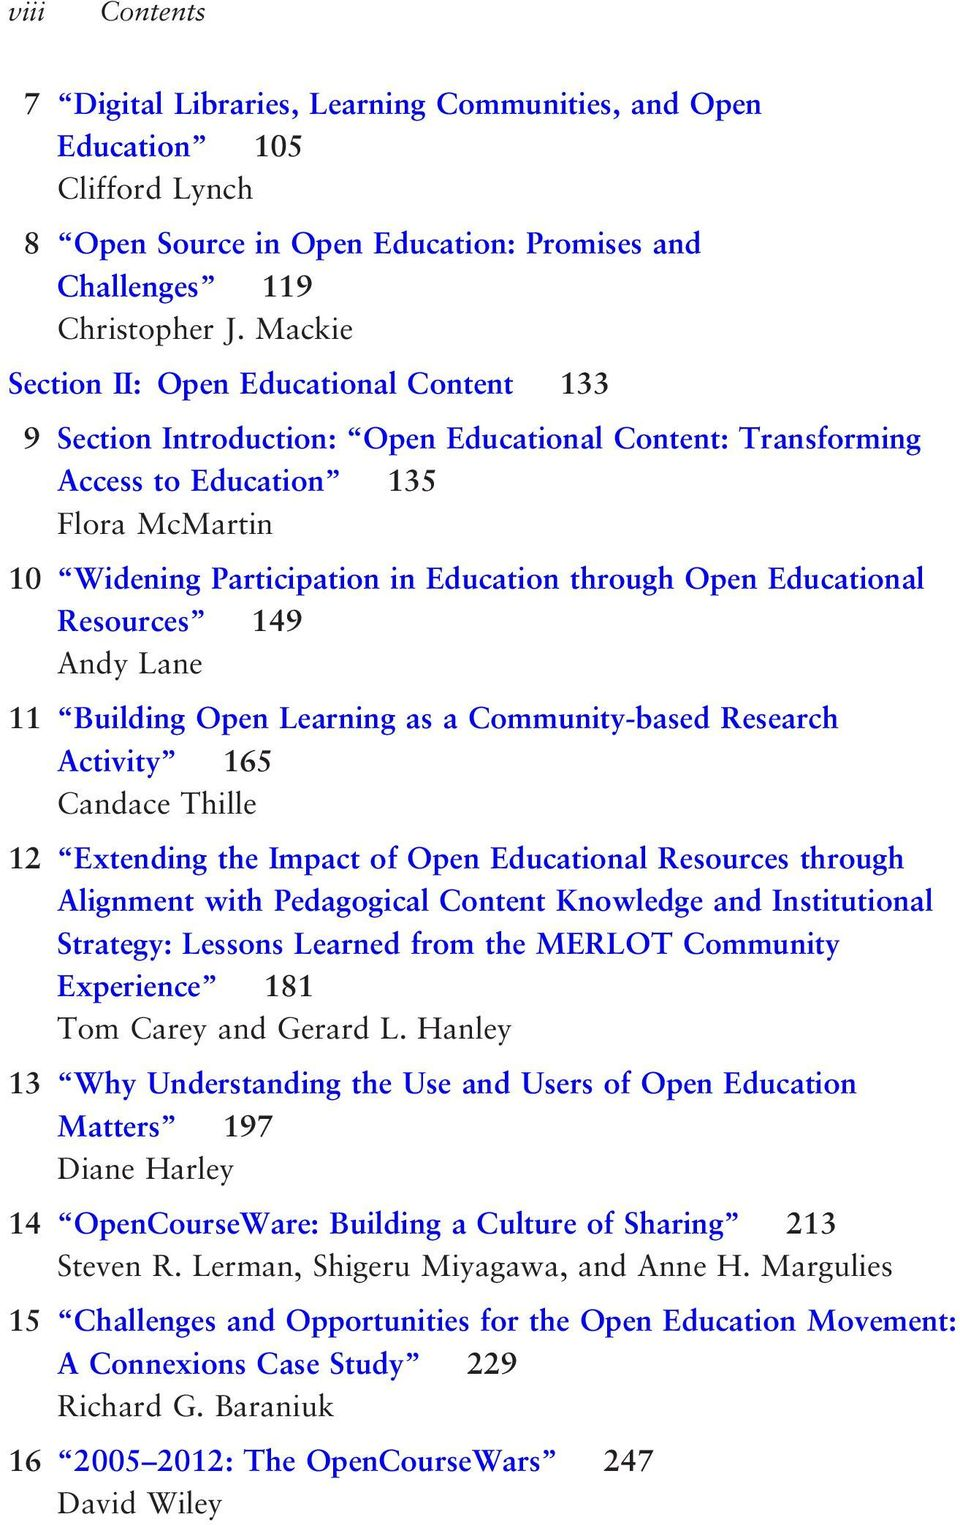 Open Educational Resources 149 Andy Lane 11 Building Open Learning as a Community-based Research Activity 165 Candace Thille 12 Extending the Impact of Open Educational Resources through Alignment